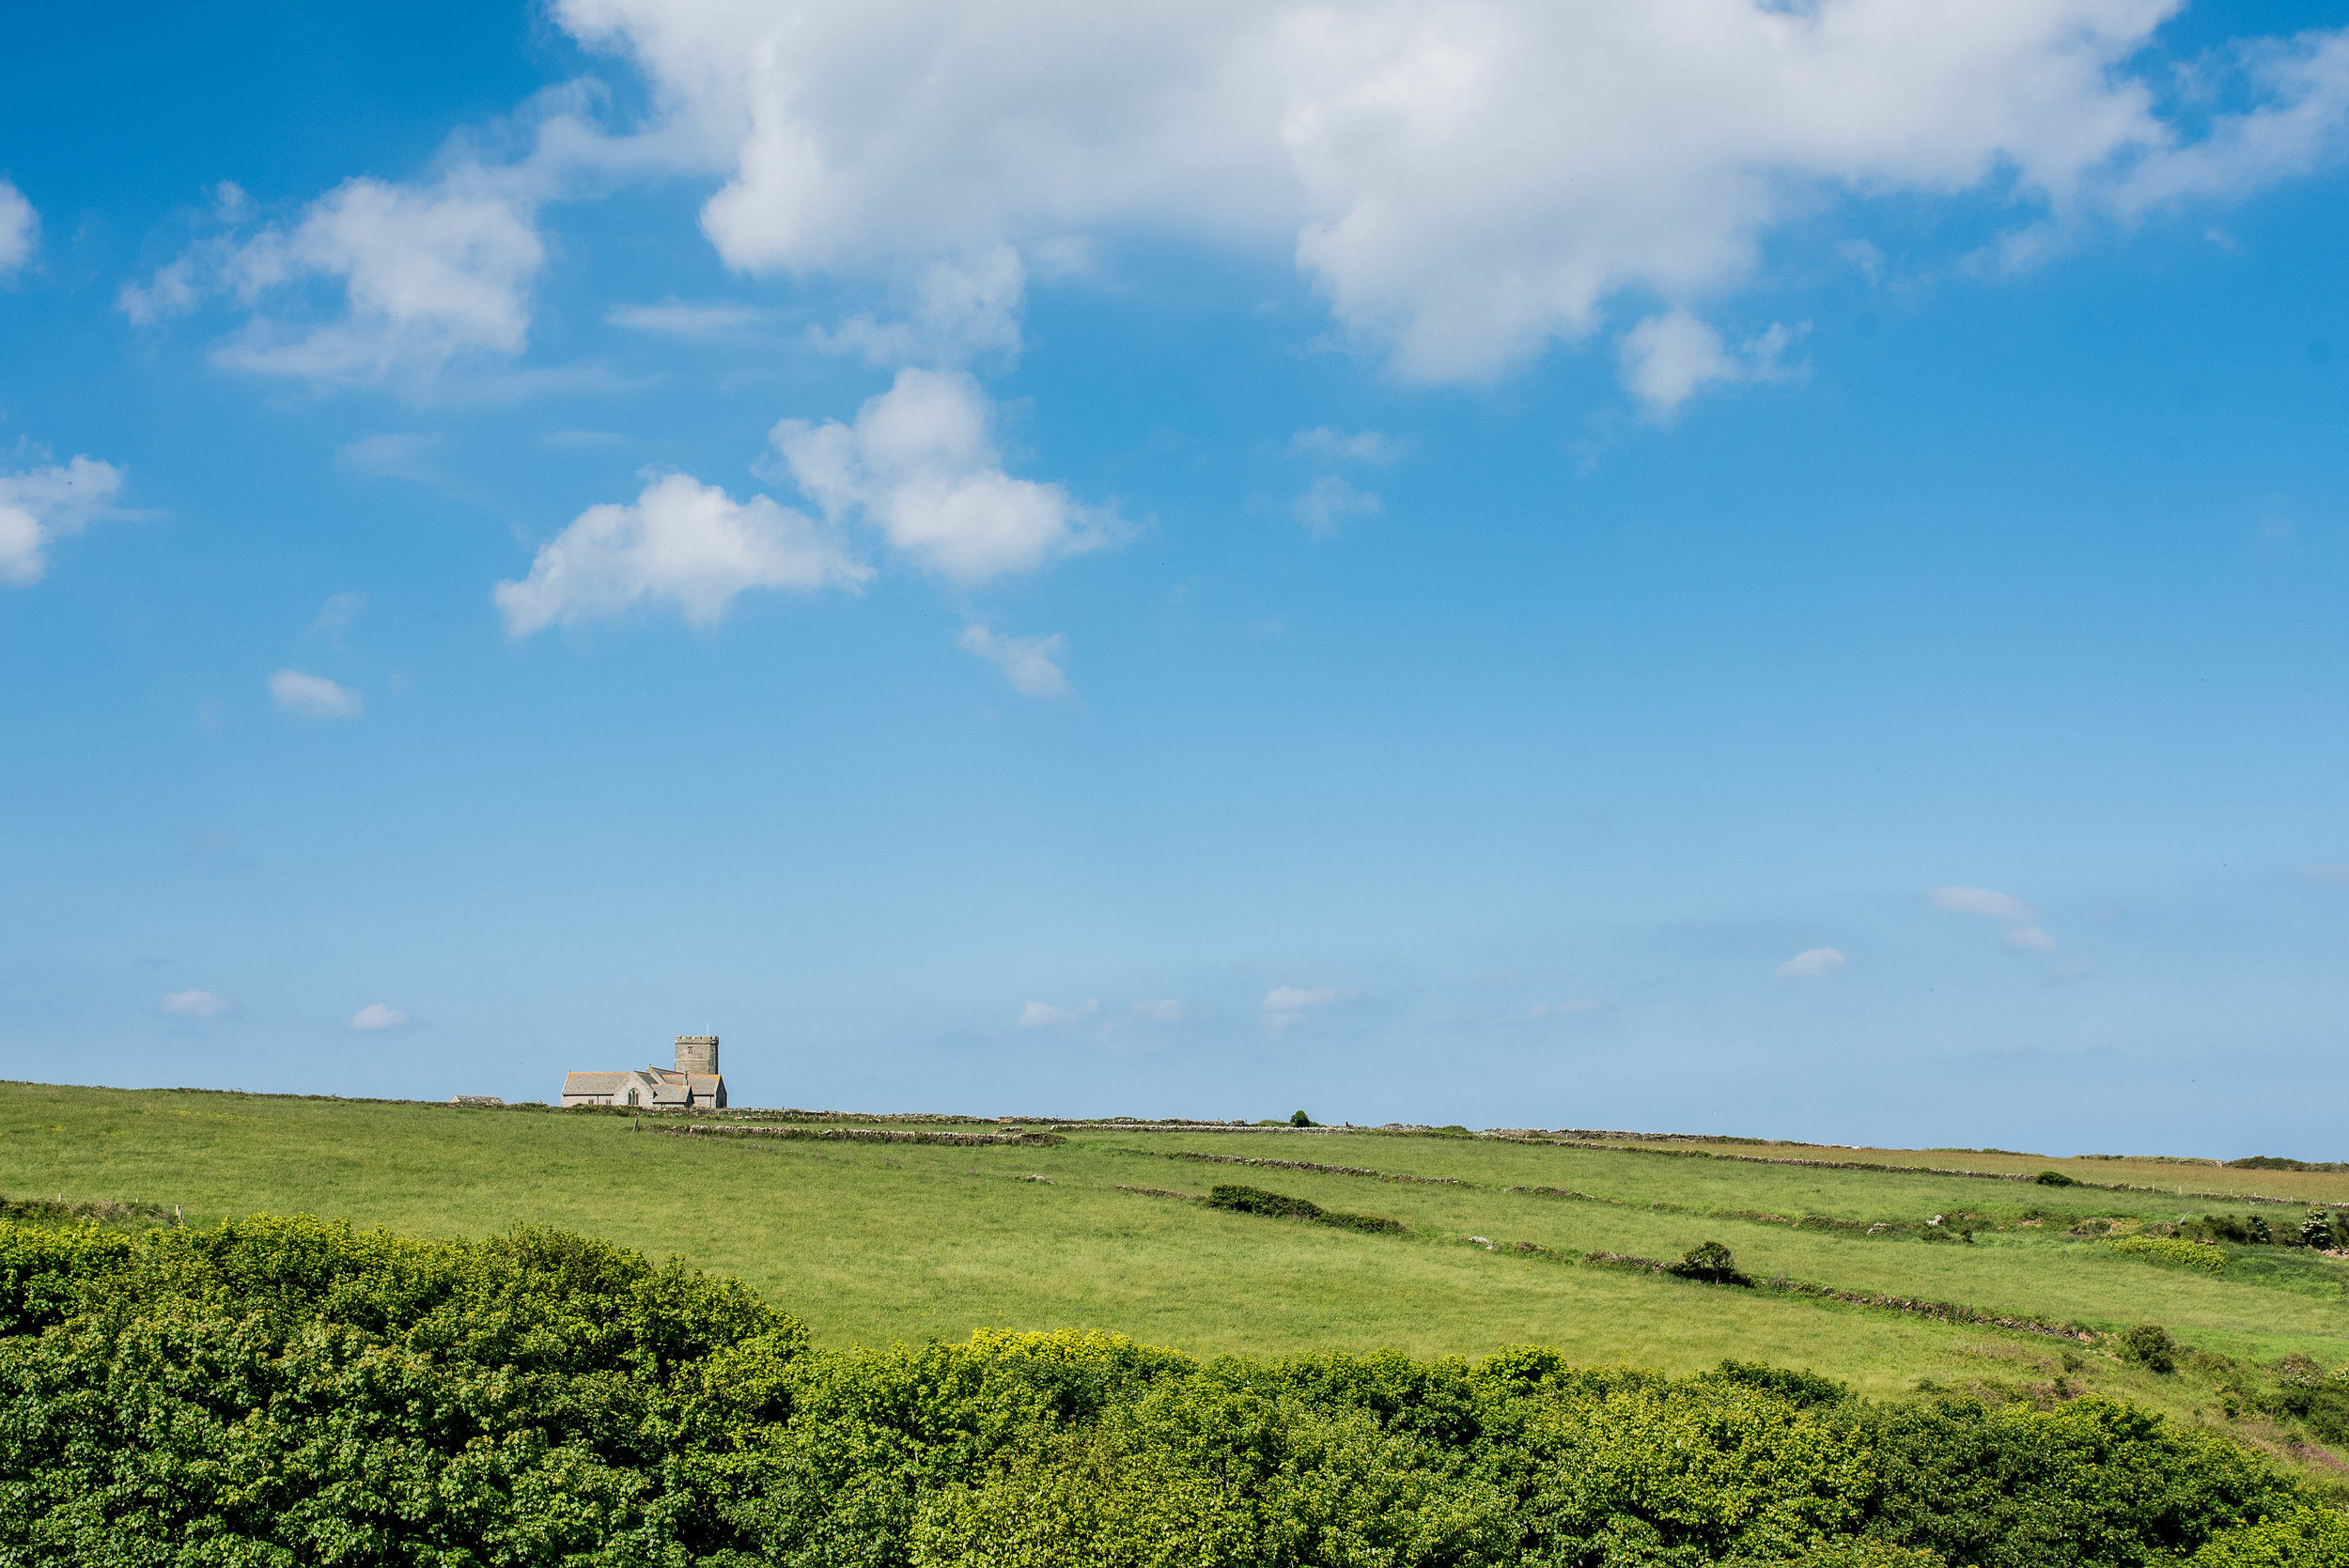 Packing up, we headed East, back toward London, stopping first at No. 13,  Tintagel Castle .